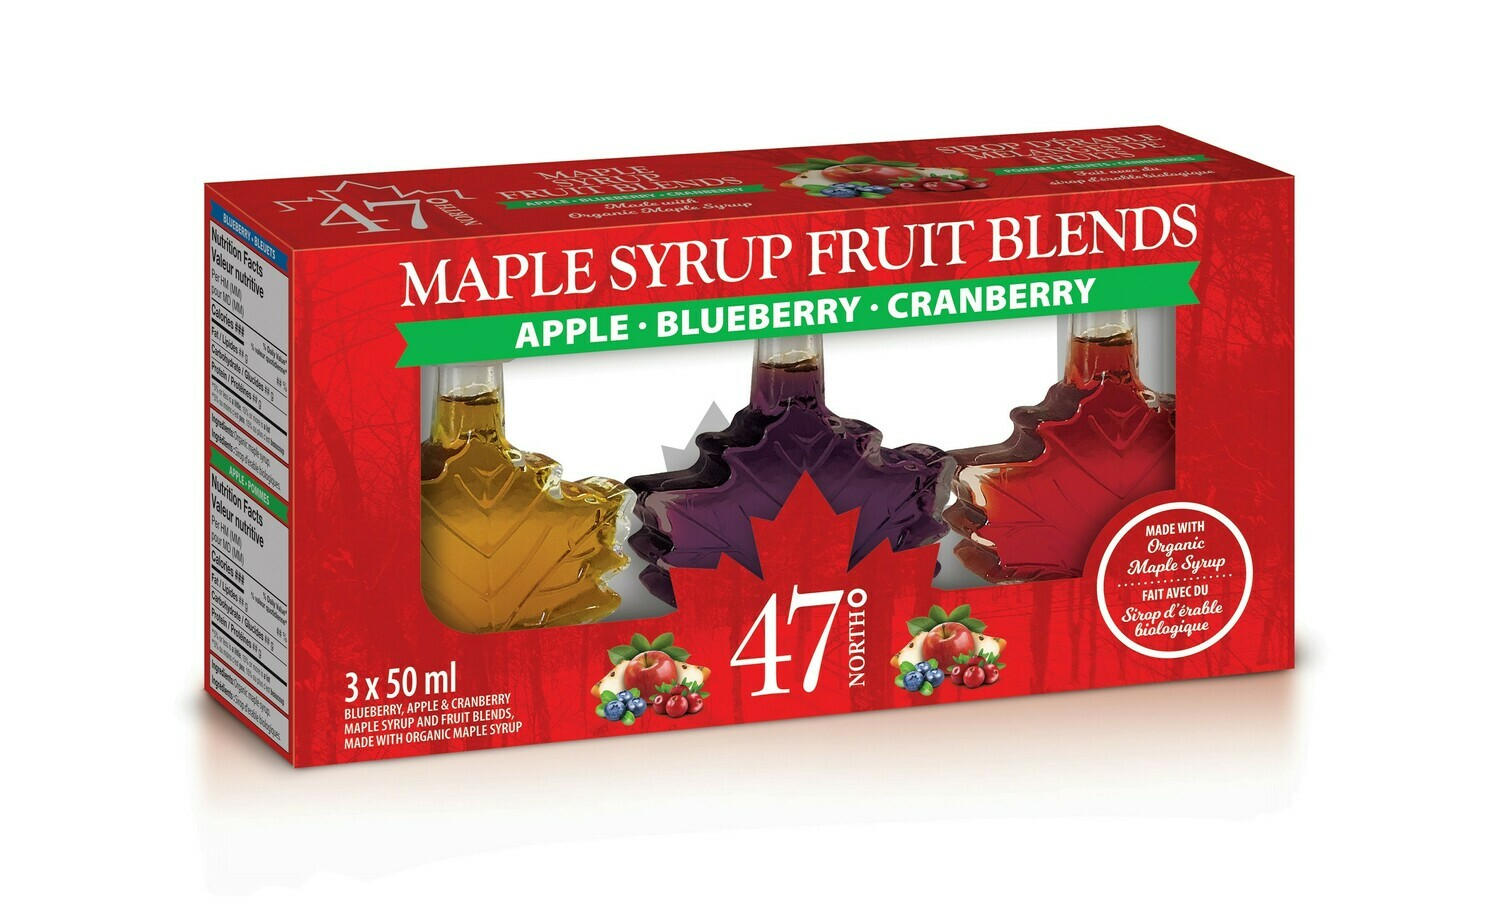 Maple Syrup Fruit Blends Gift Pack